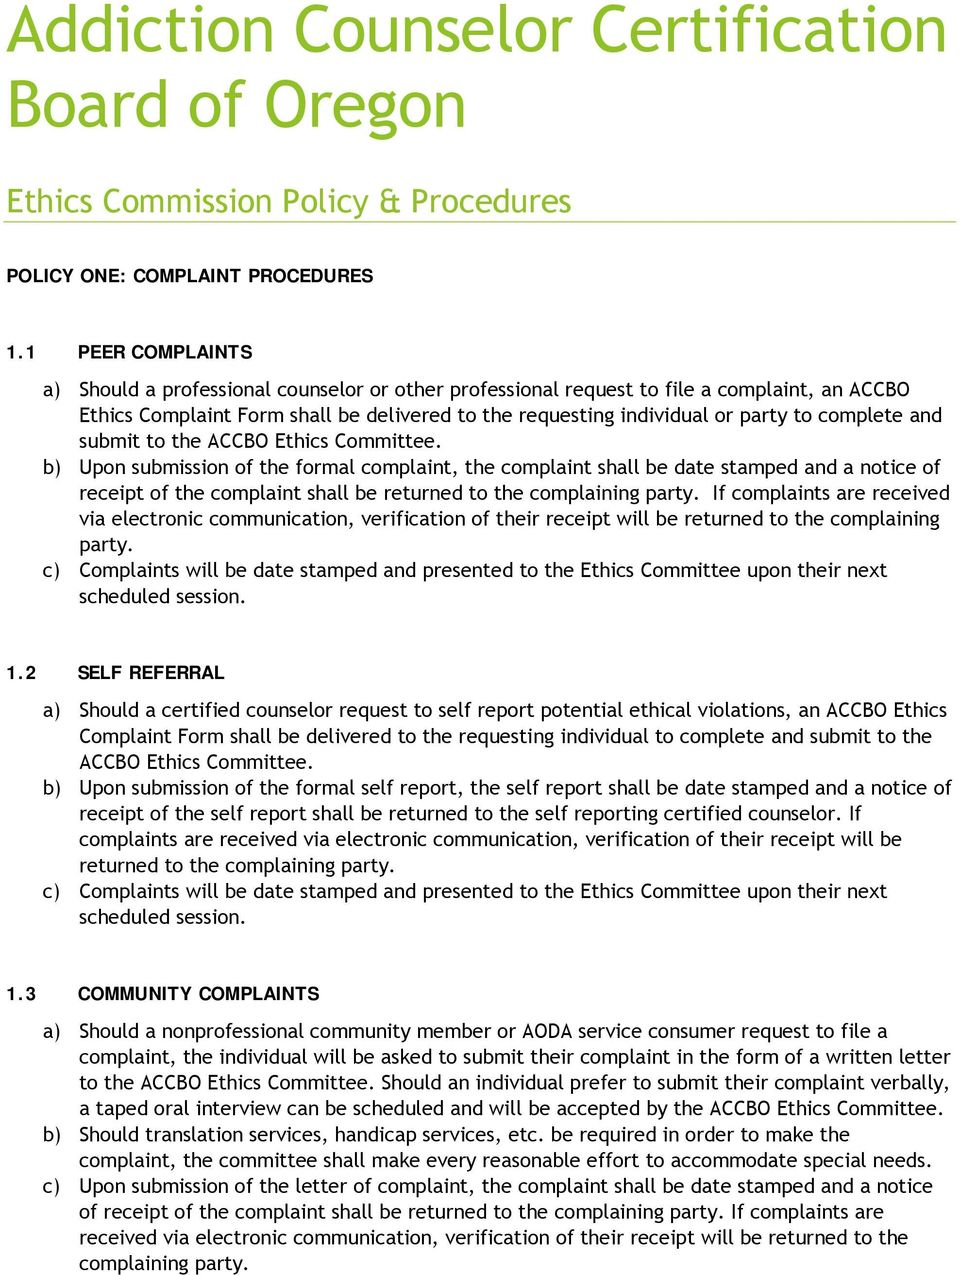 complete and submit to the ACCBO Ethics Committee.